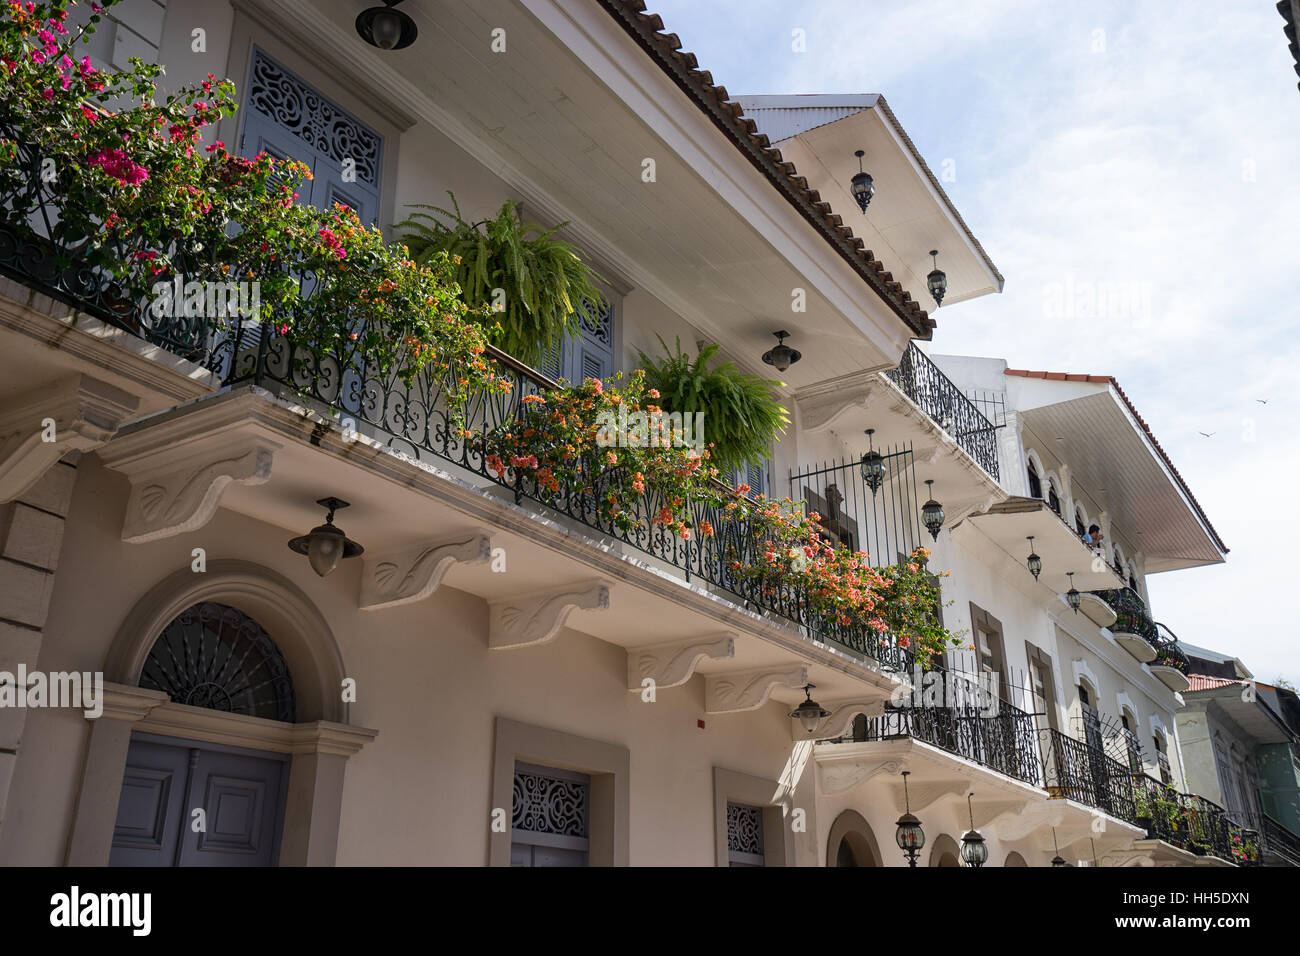 June 15, 2016 Panama City, Panama: closeup of a newly renovated historical building in the Casco Viejo area of the - Stock Image